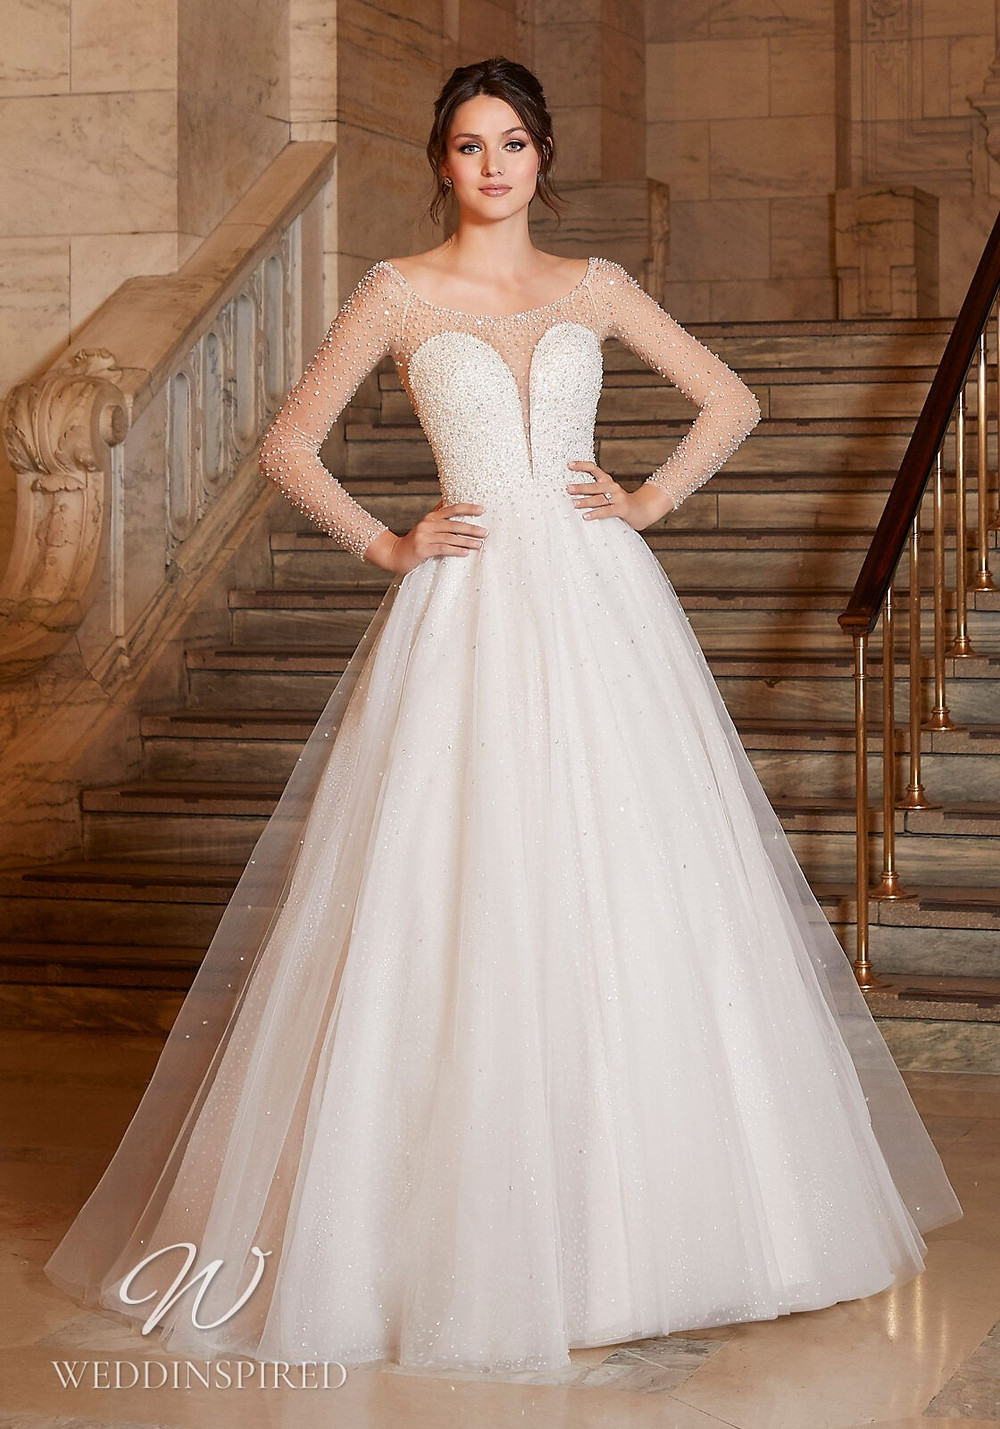 A Madeline Gardner tulle and satin ball gown wedding dress with sparkles